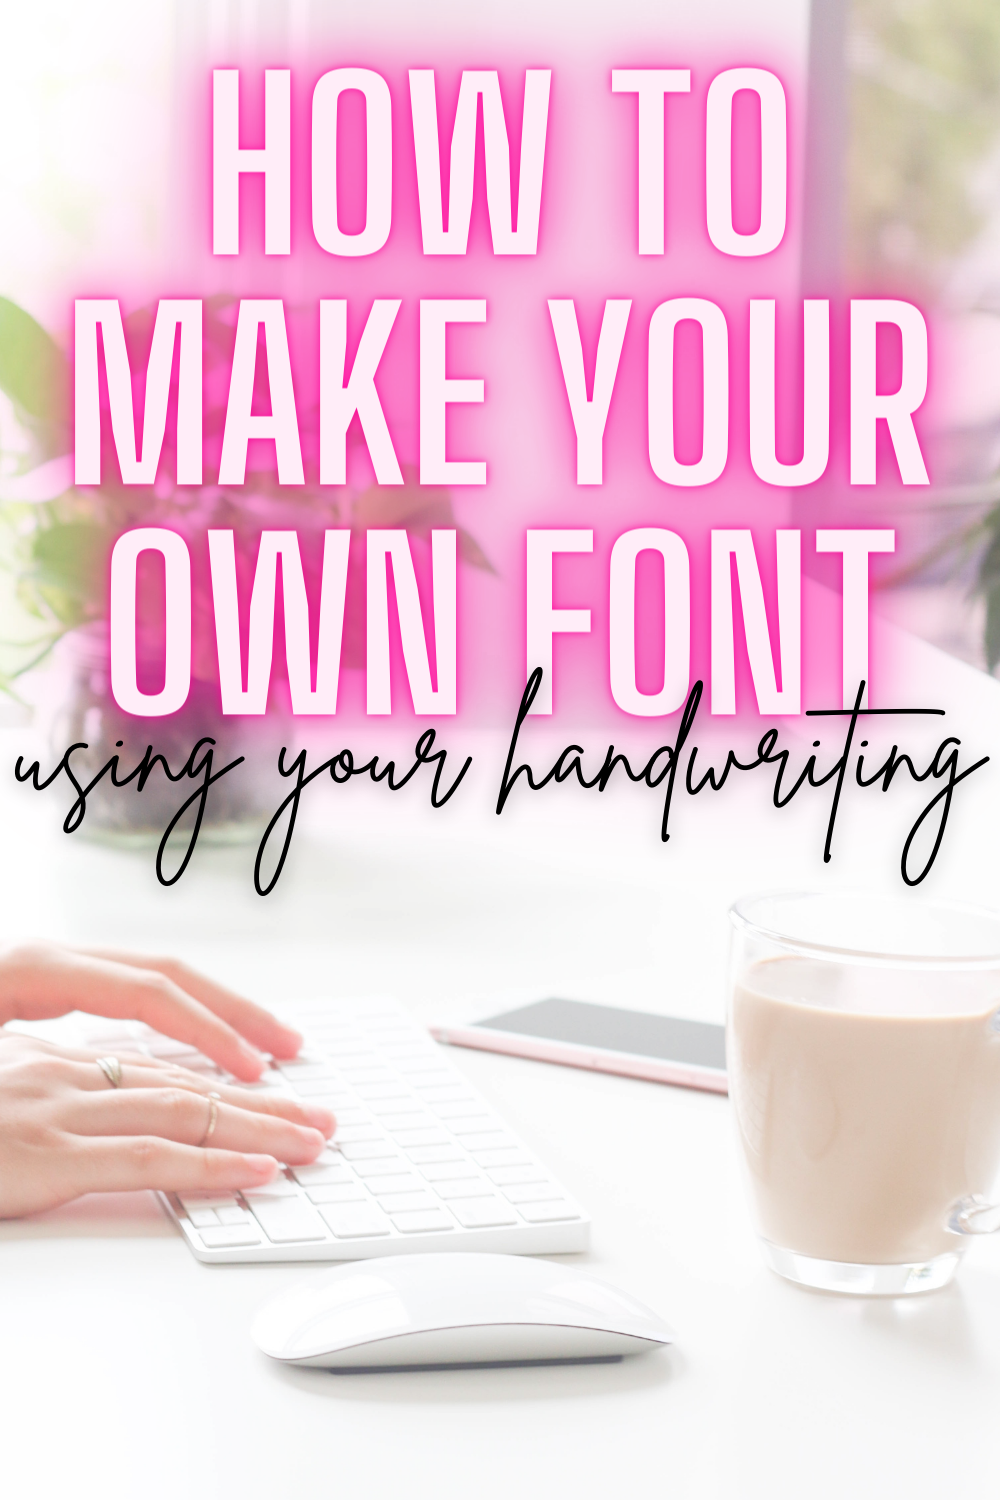 How To Turn Your Handwriting Into A Computer Font - Sharing all the details on how to many a custom handwriting font on the computer! | How To Make Handwriting Font | Font Maker | Calligraphr